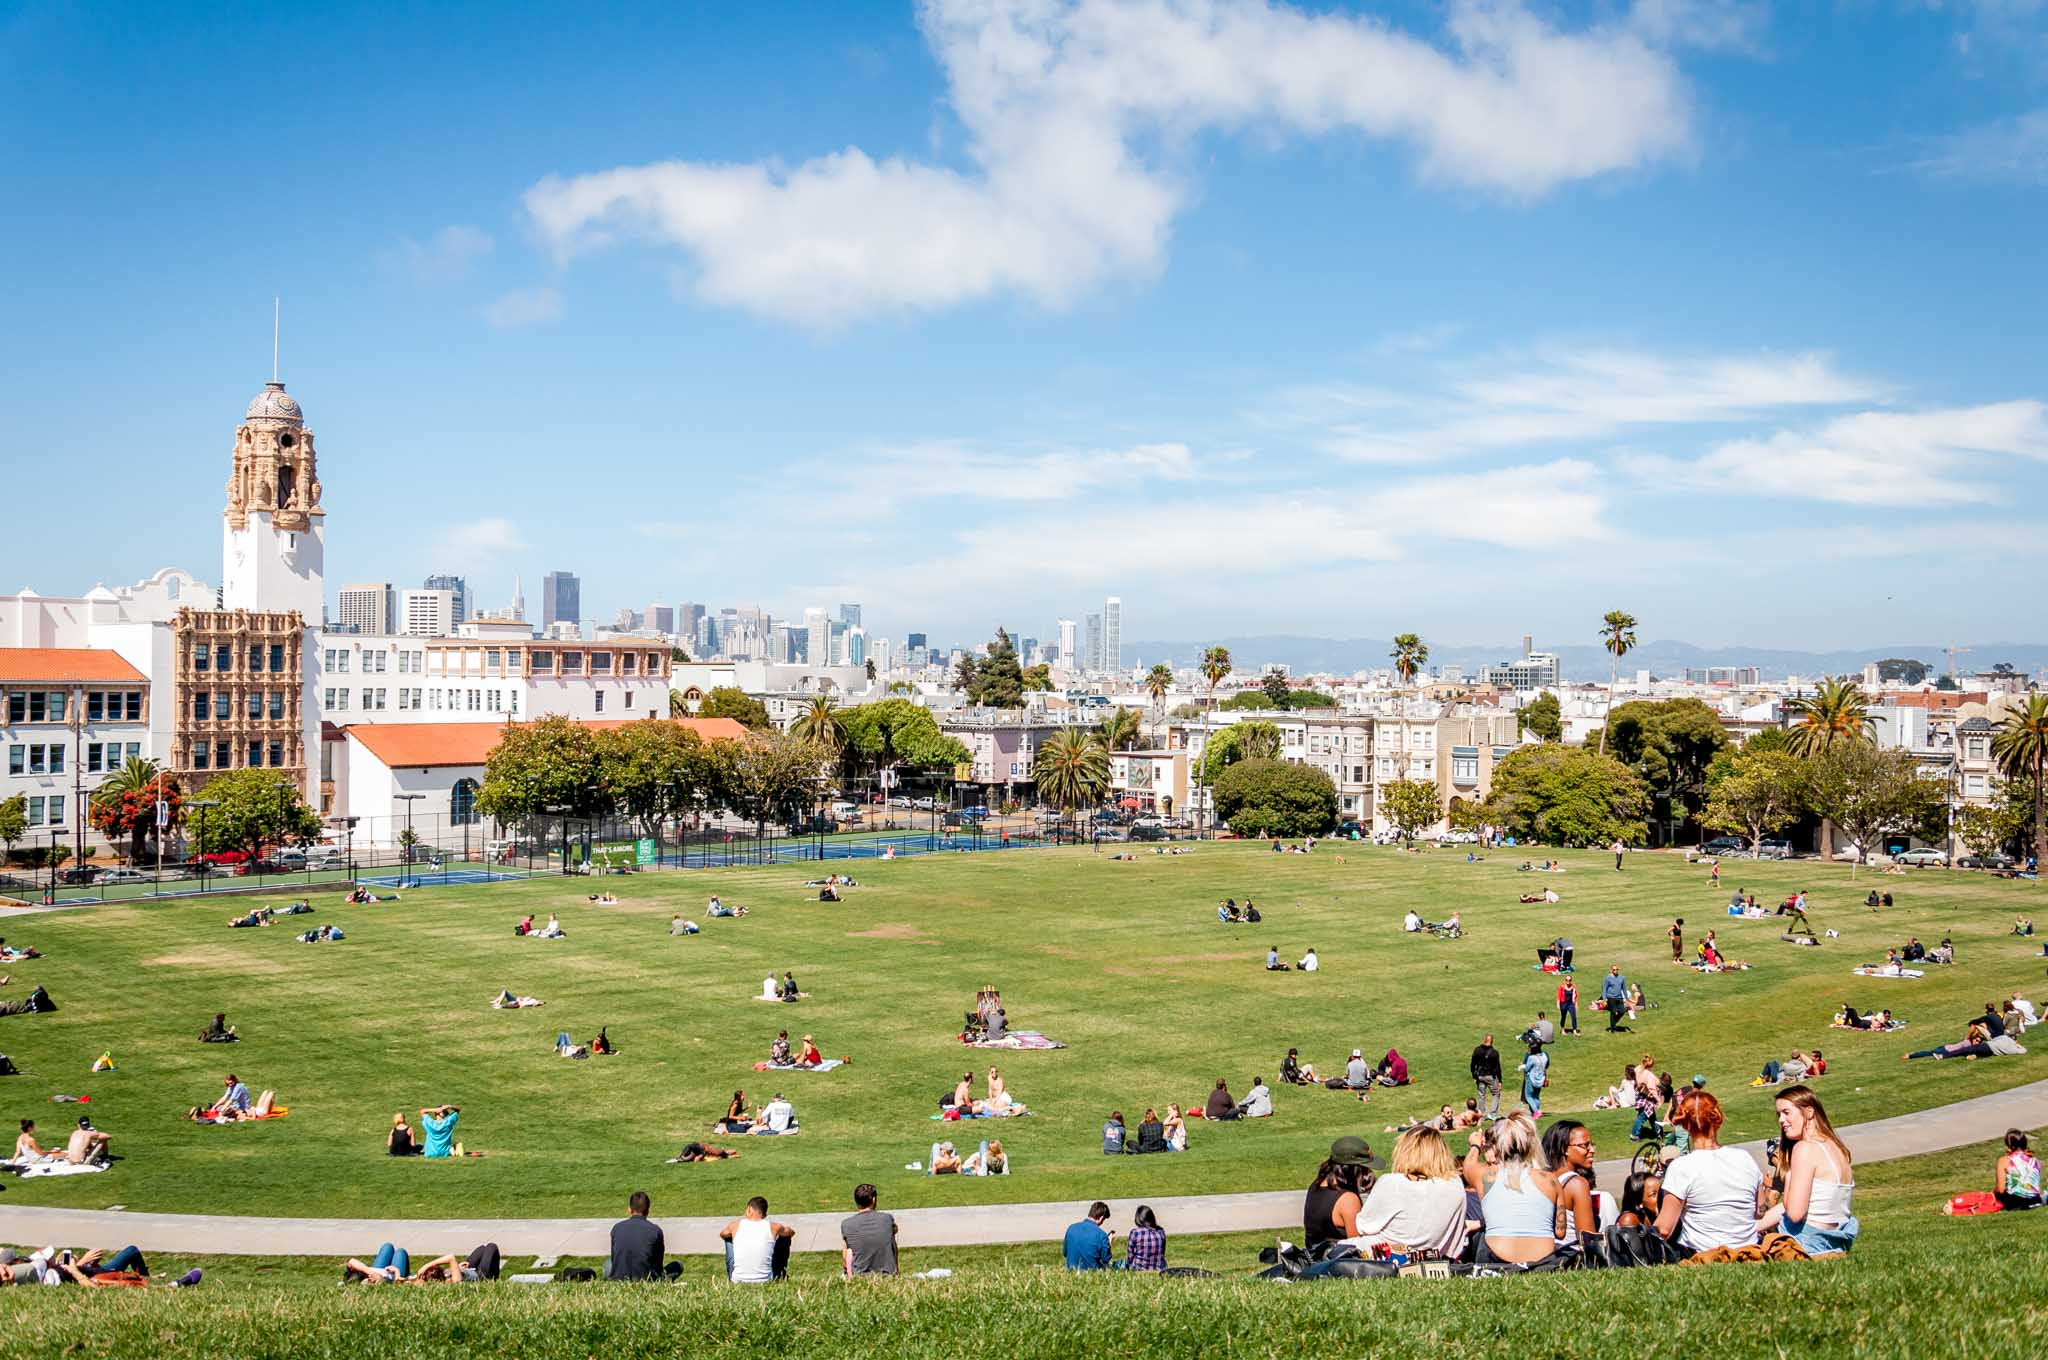 People in San Francisco's Mission Dolores Park overlooking the city